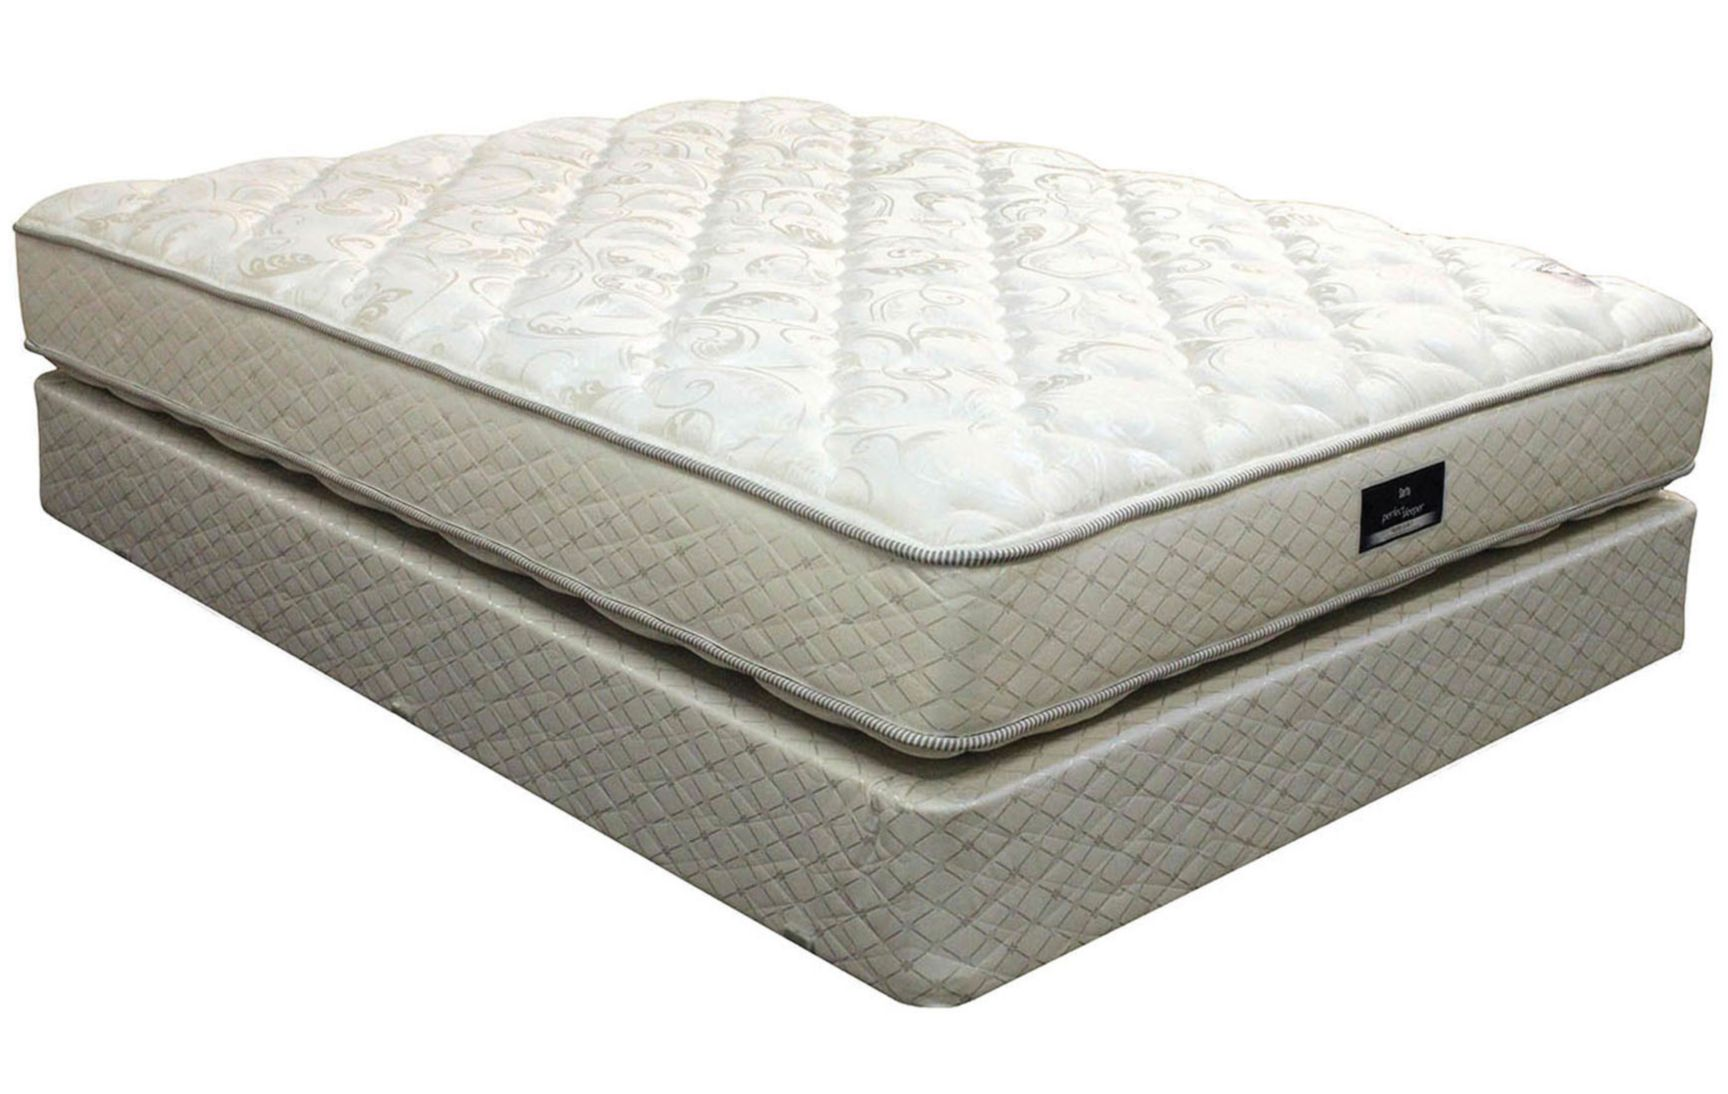 Springwall casino mattress review